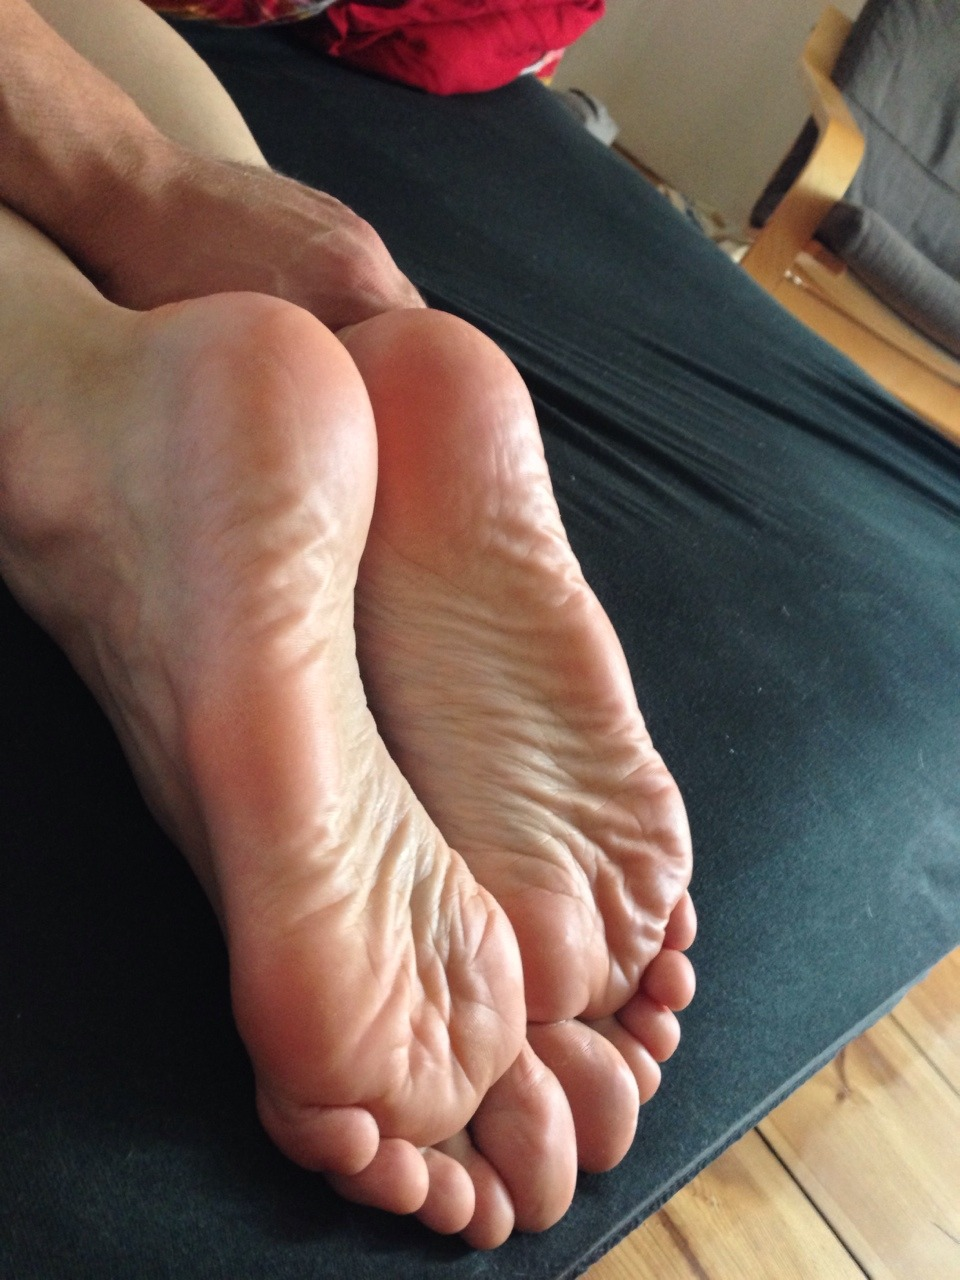 pinky wrinkled soles pinky soles wrinkled pinky soles wrinkled pinky soles pinky wrinkled soles